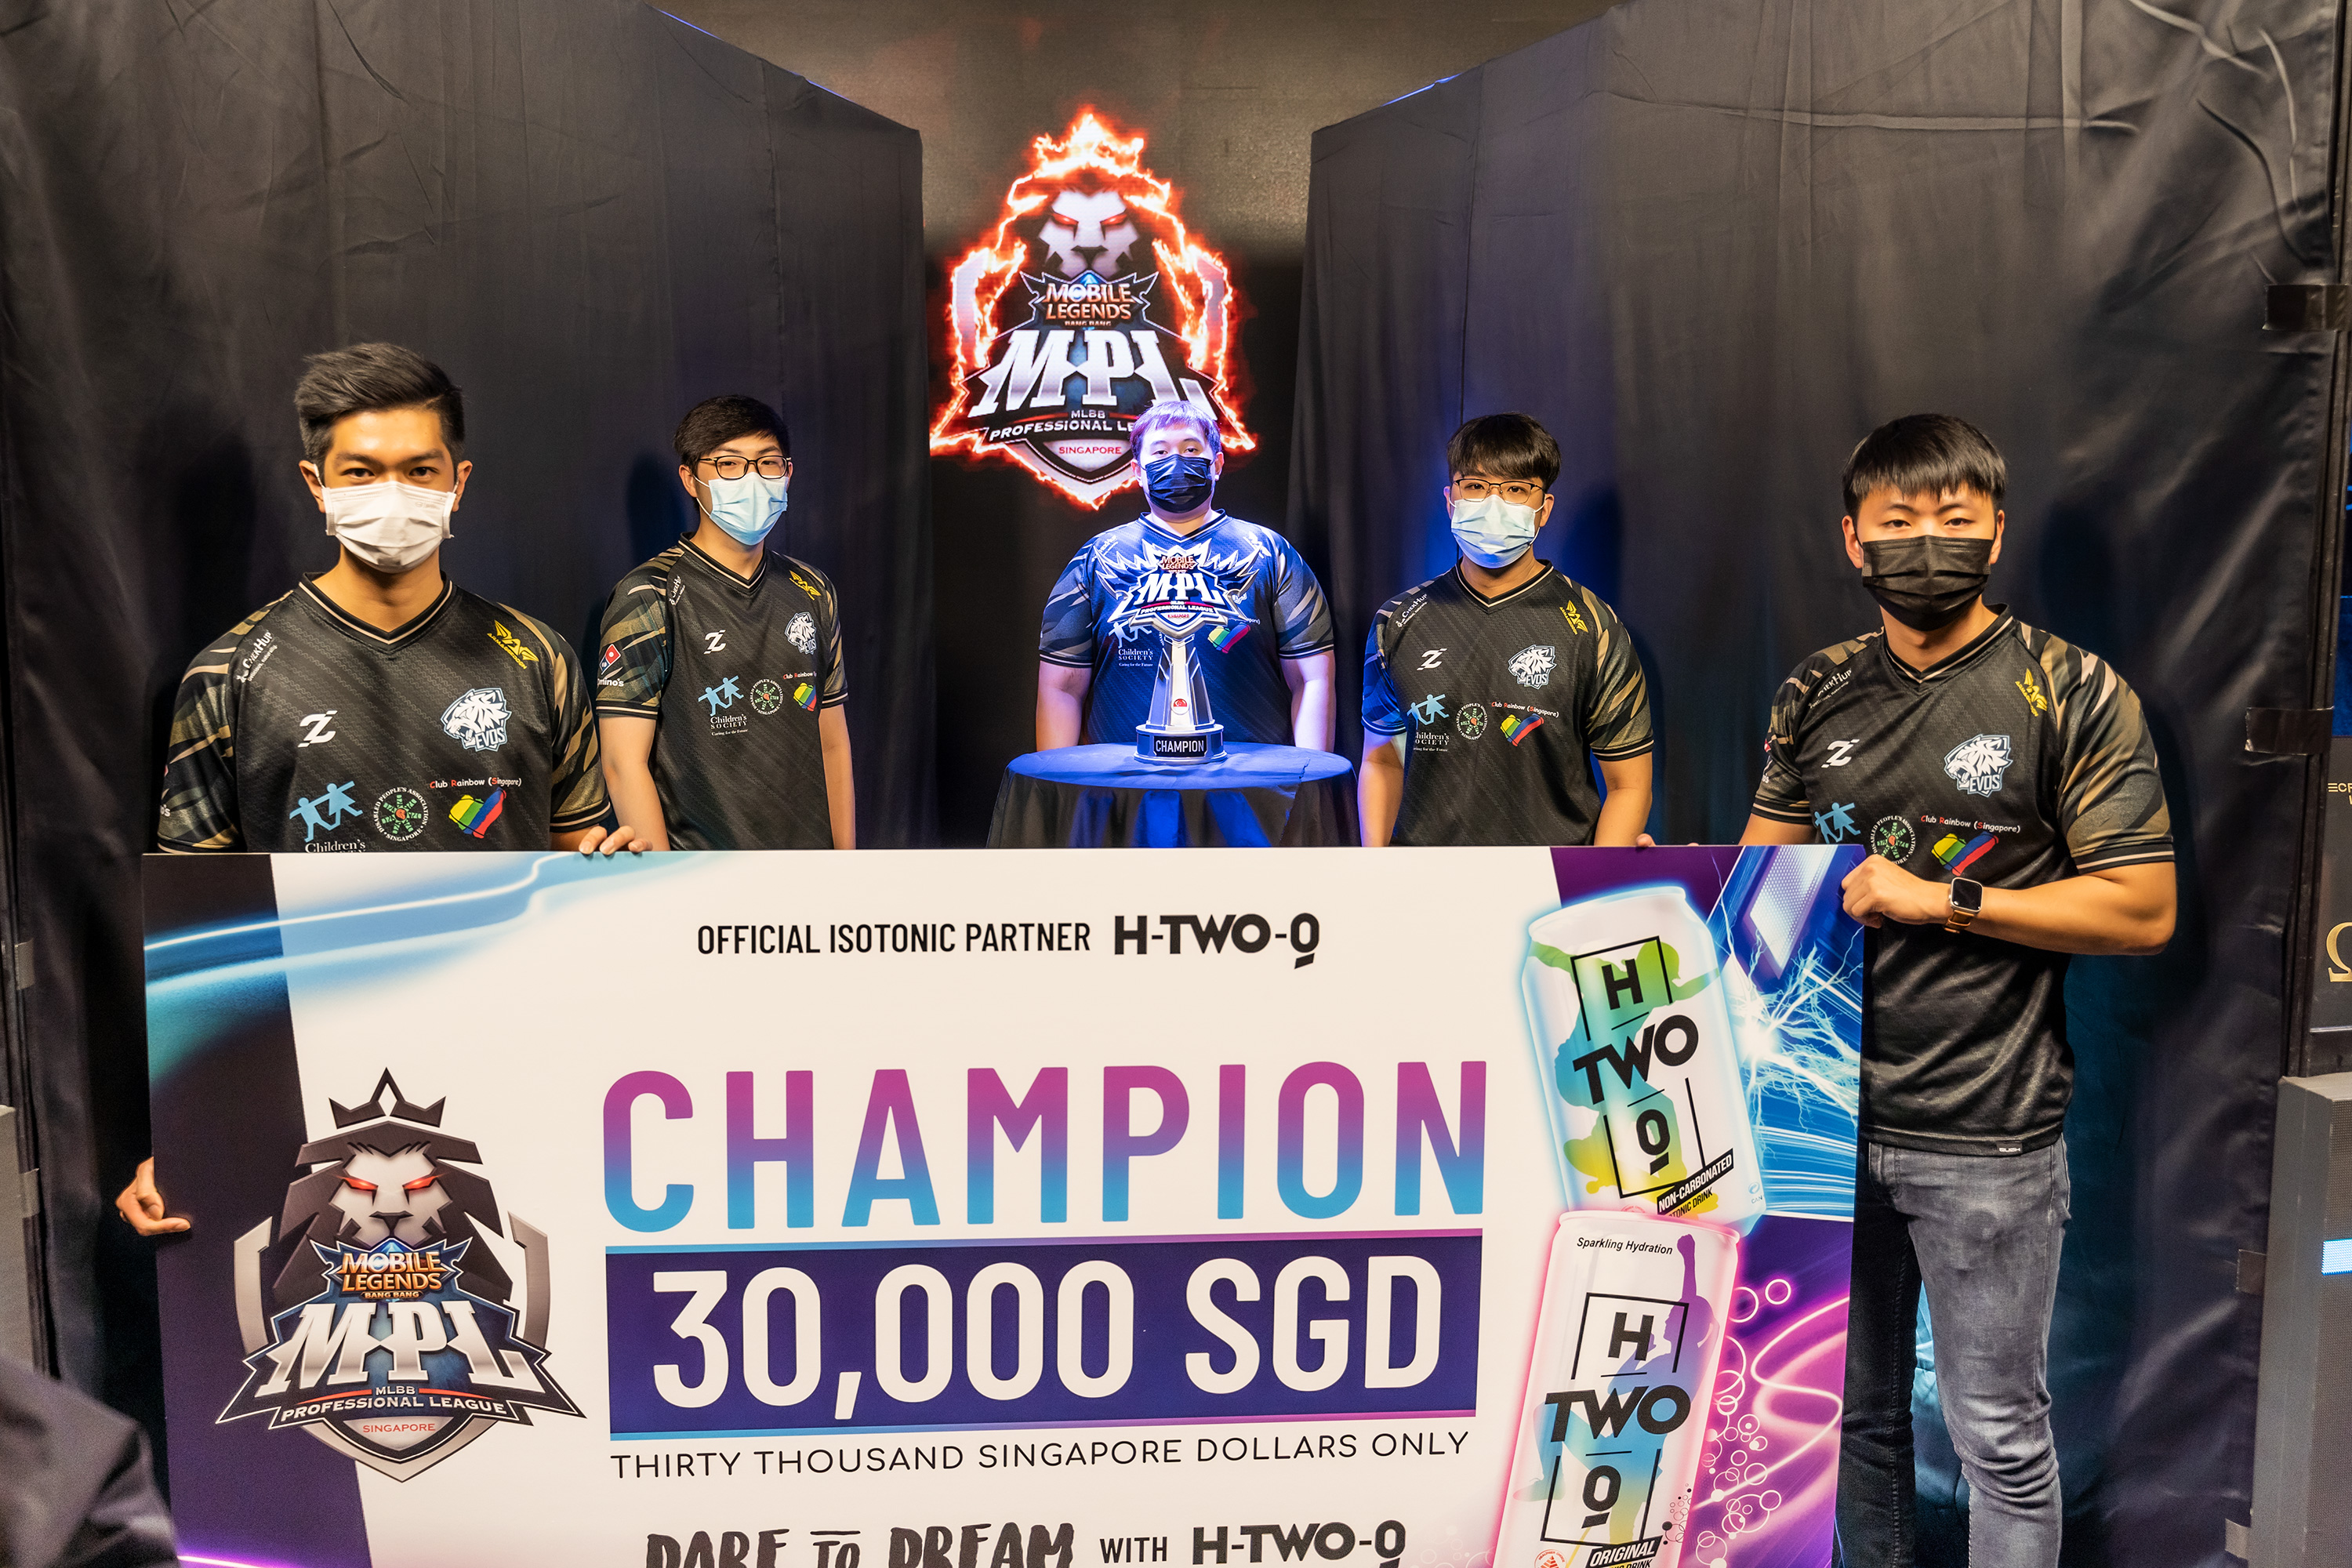 EVOS SG standing with trophy and prize money MPL SG